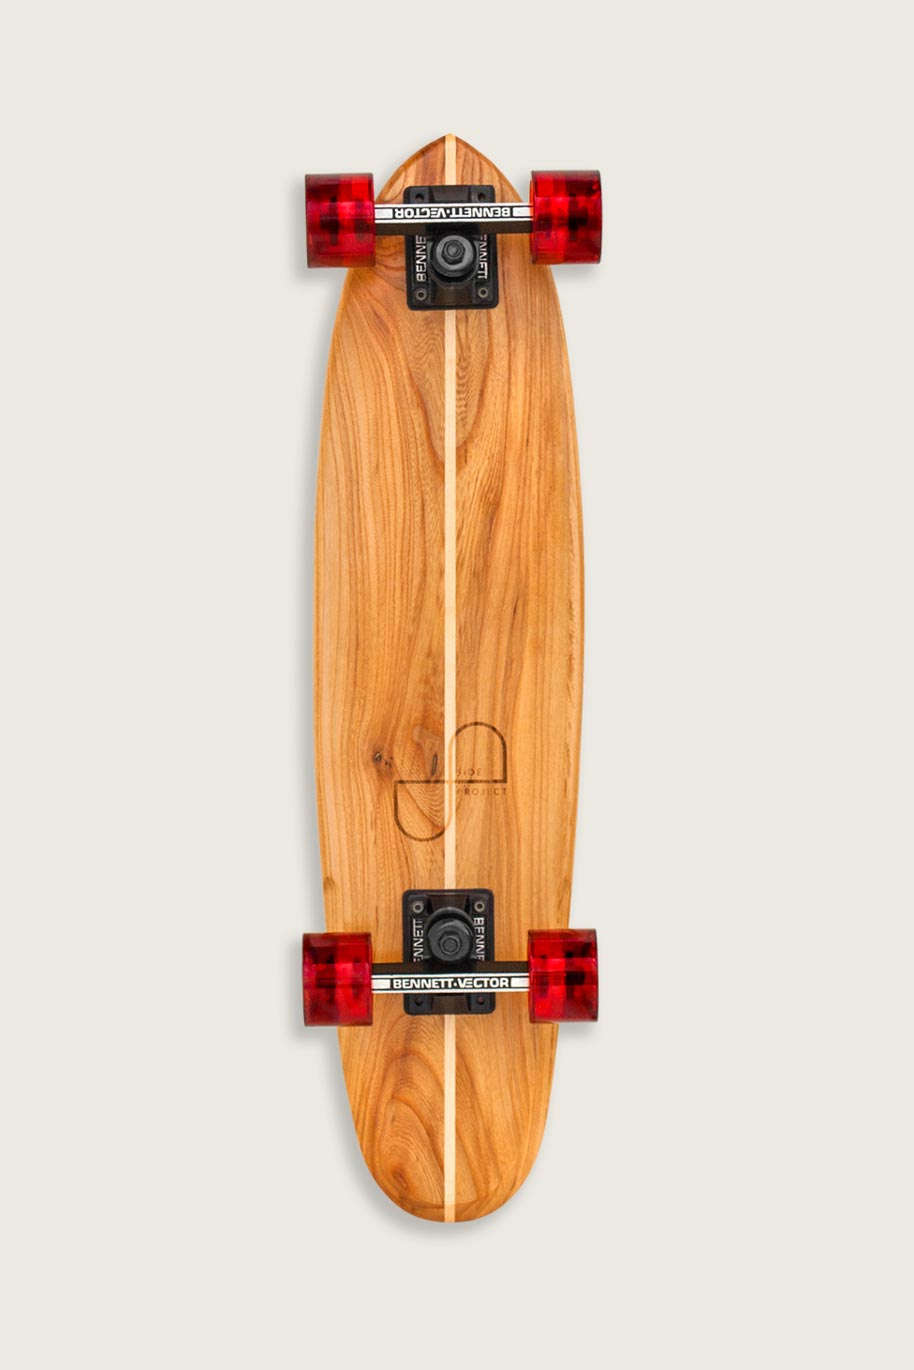 Mini-Cruiser No. 6